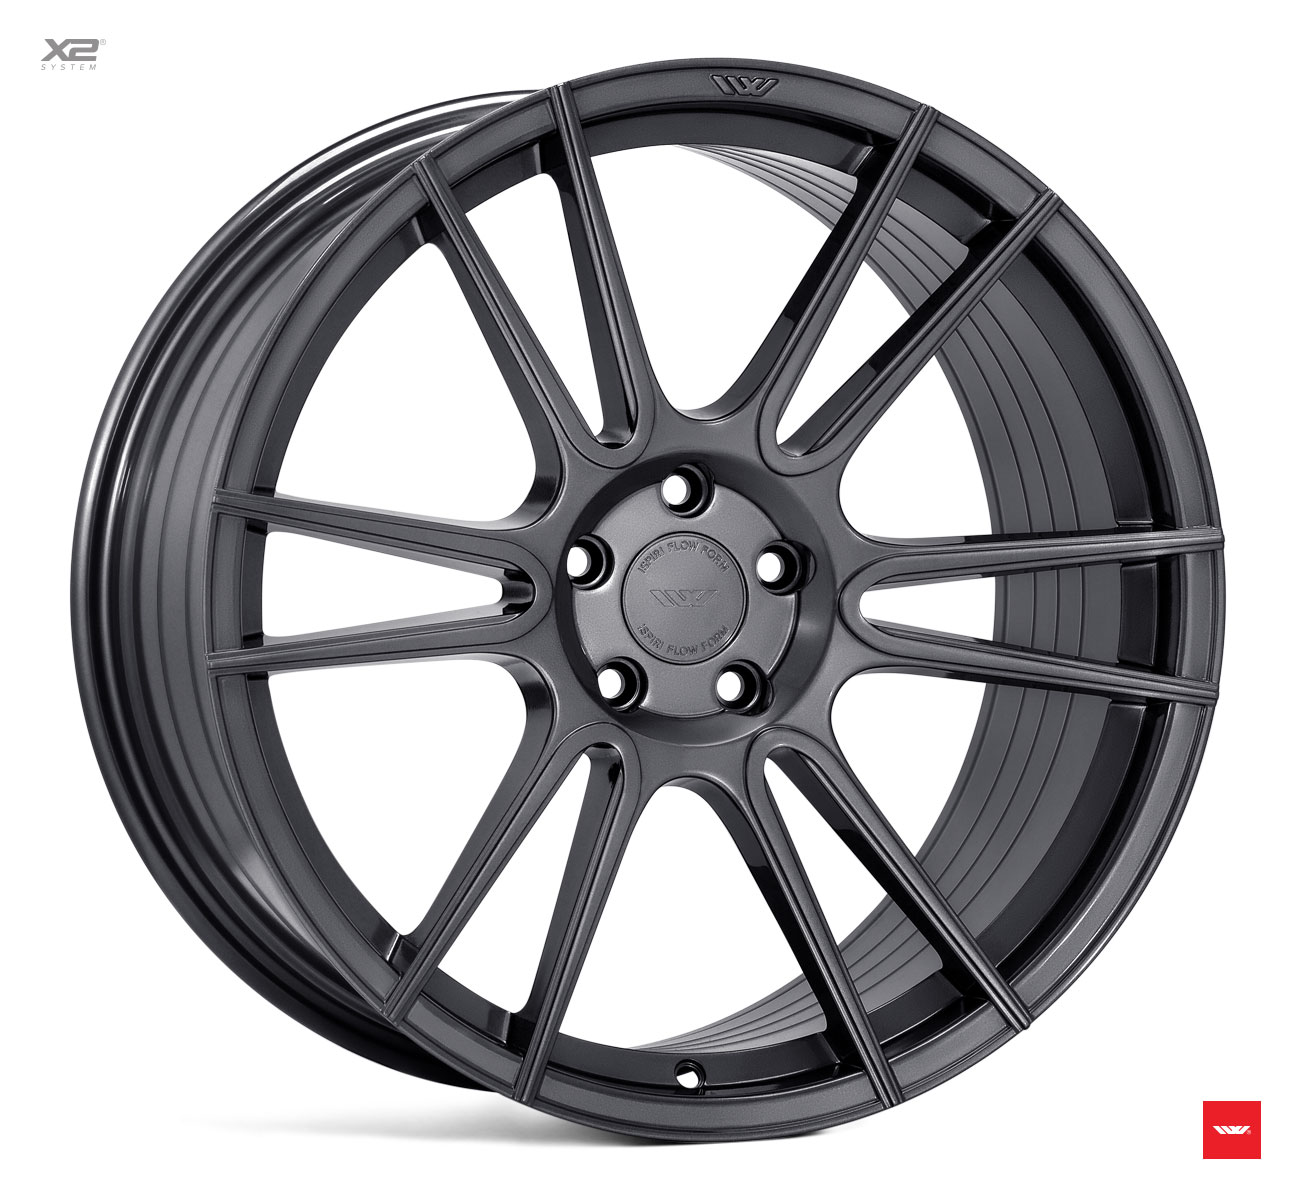 "NEW 20"" ISPIRI FFR7 TWIN CURVED 6 SPOKE ALLOY WHEELS IN CARBON GRAPHITE, WIDER 10"" REAR 5x120"